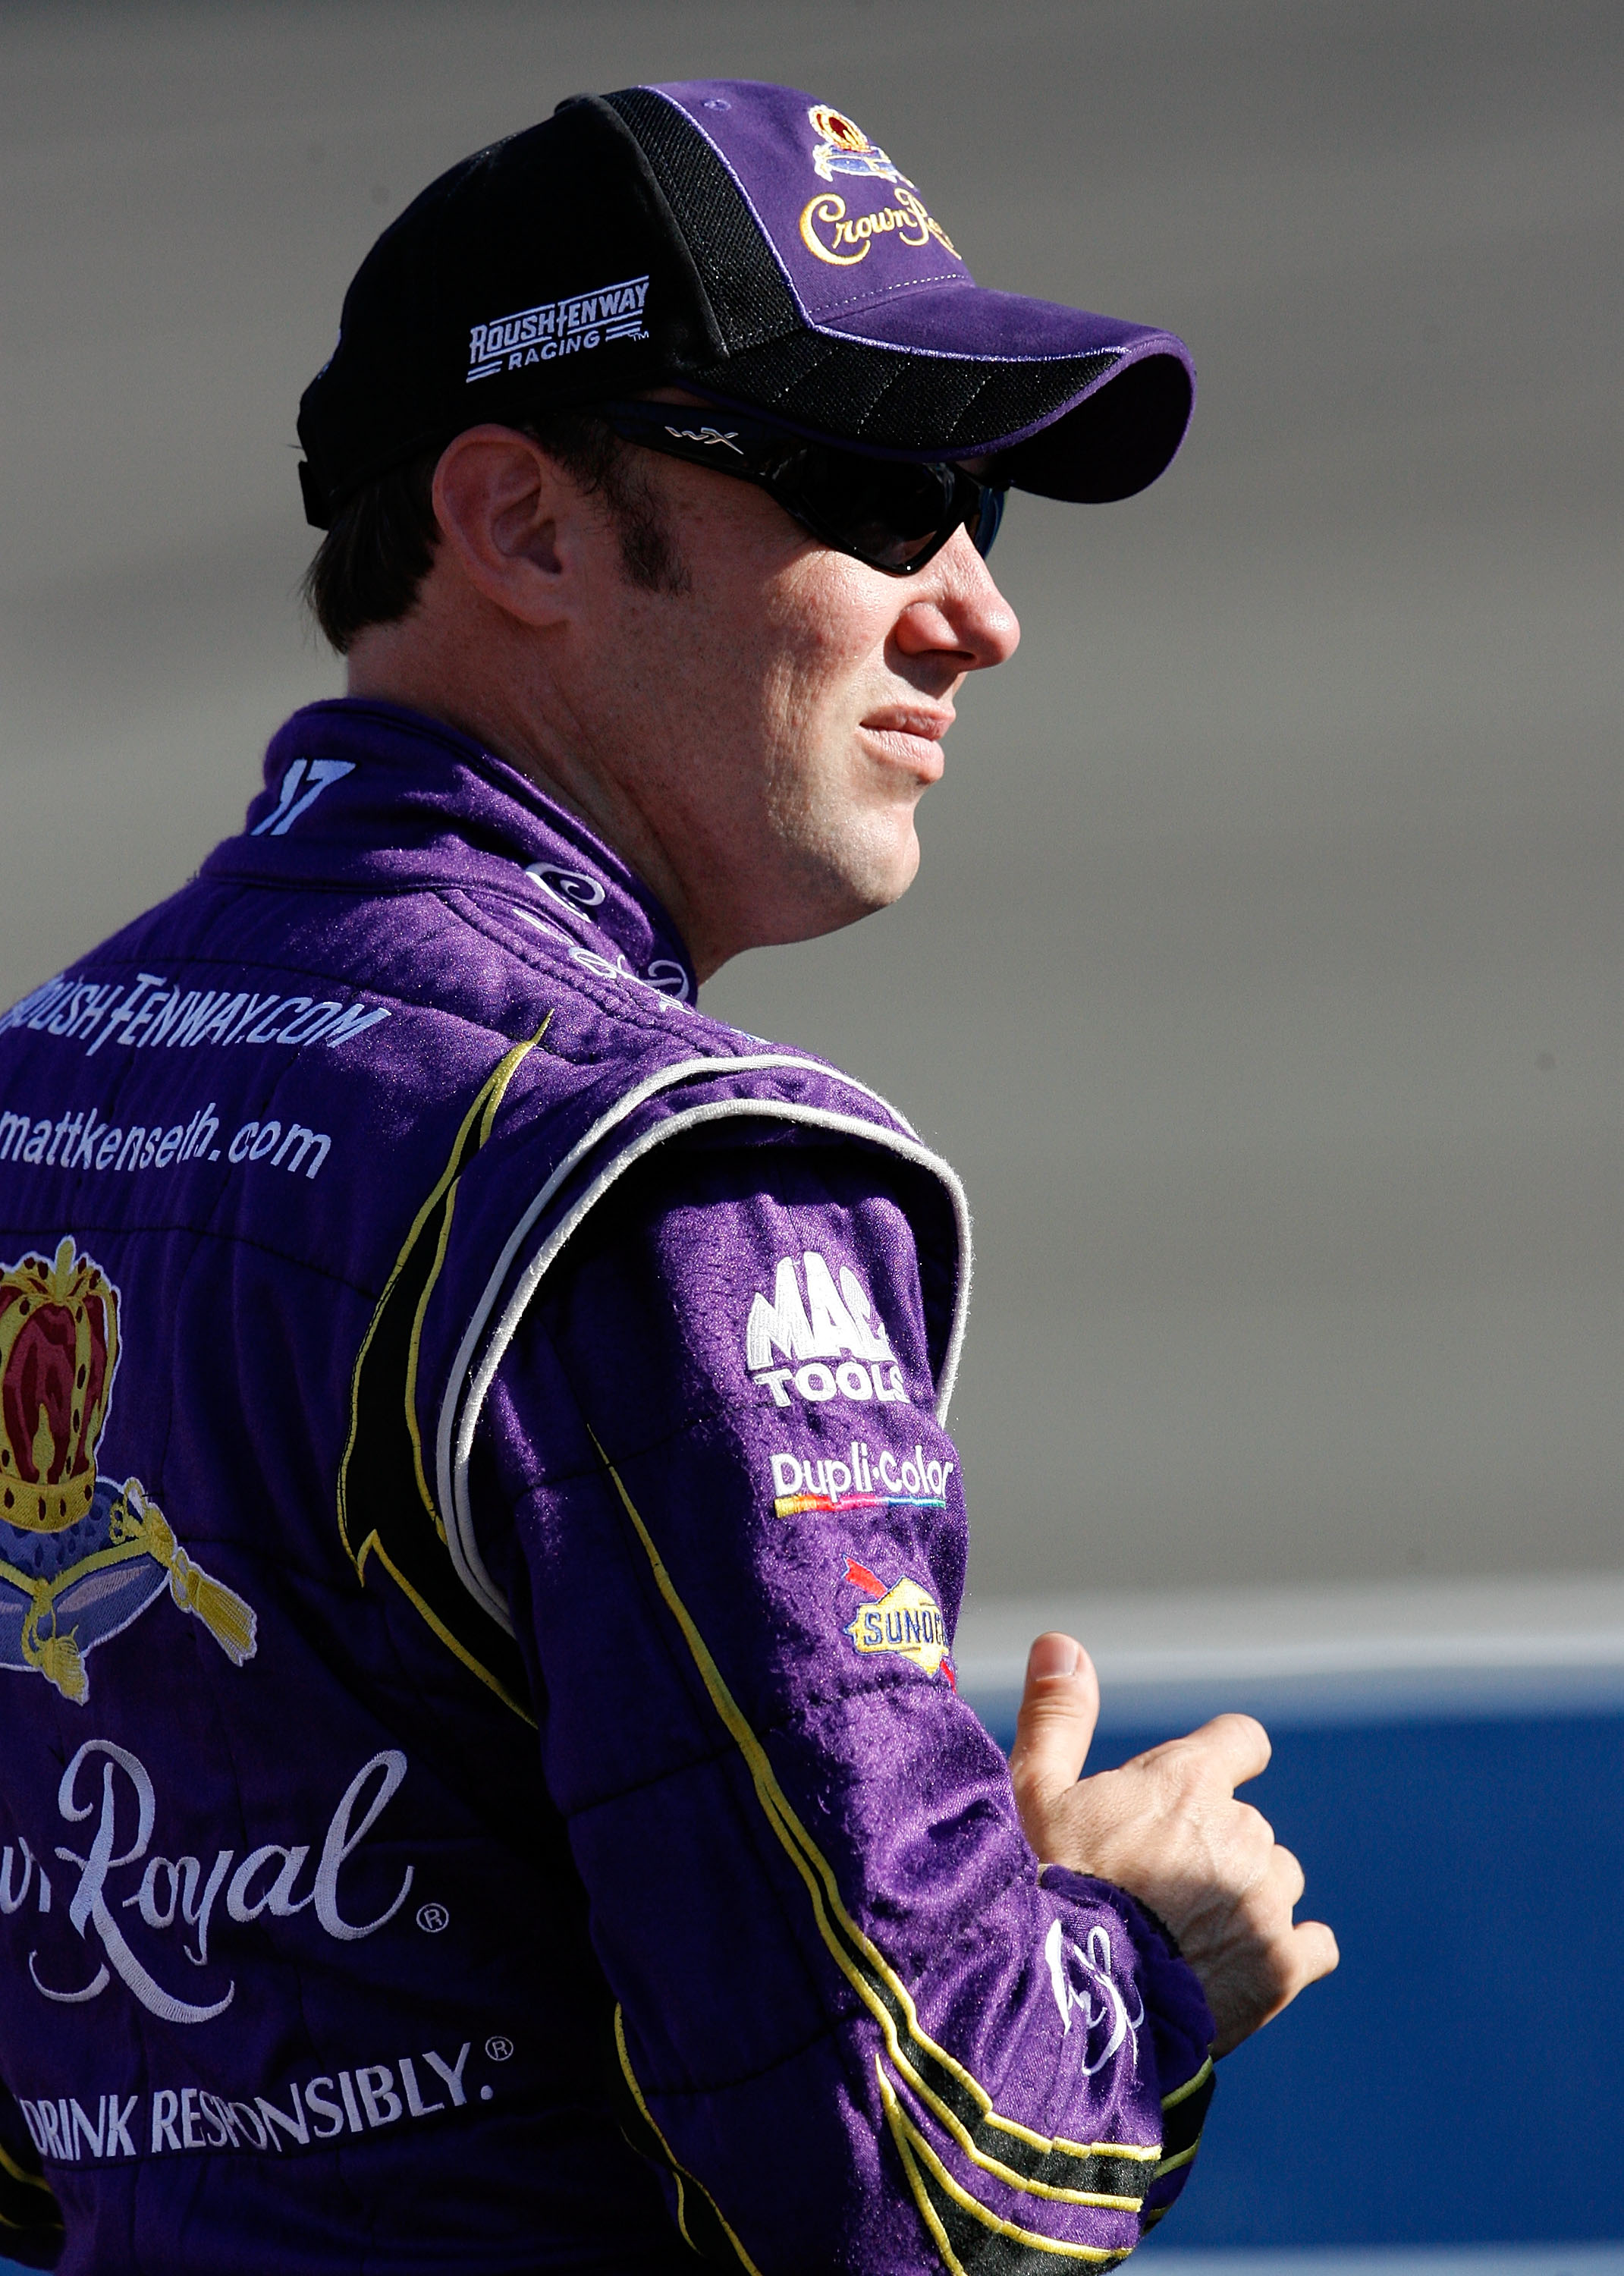 FONTANA, CA - OCTOBER 08:  Matt Kenseth, driver of the #17 Crown Royal Ford, stands on pit road qualifying for the NASCAR Sprint Cup Series Pepsi Max 400 on October 8, 2010 in Fontana, California.  (Photo by Tom Pennington/Getty Images for NASCAR)